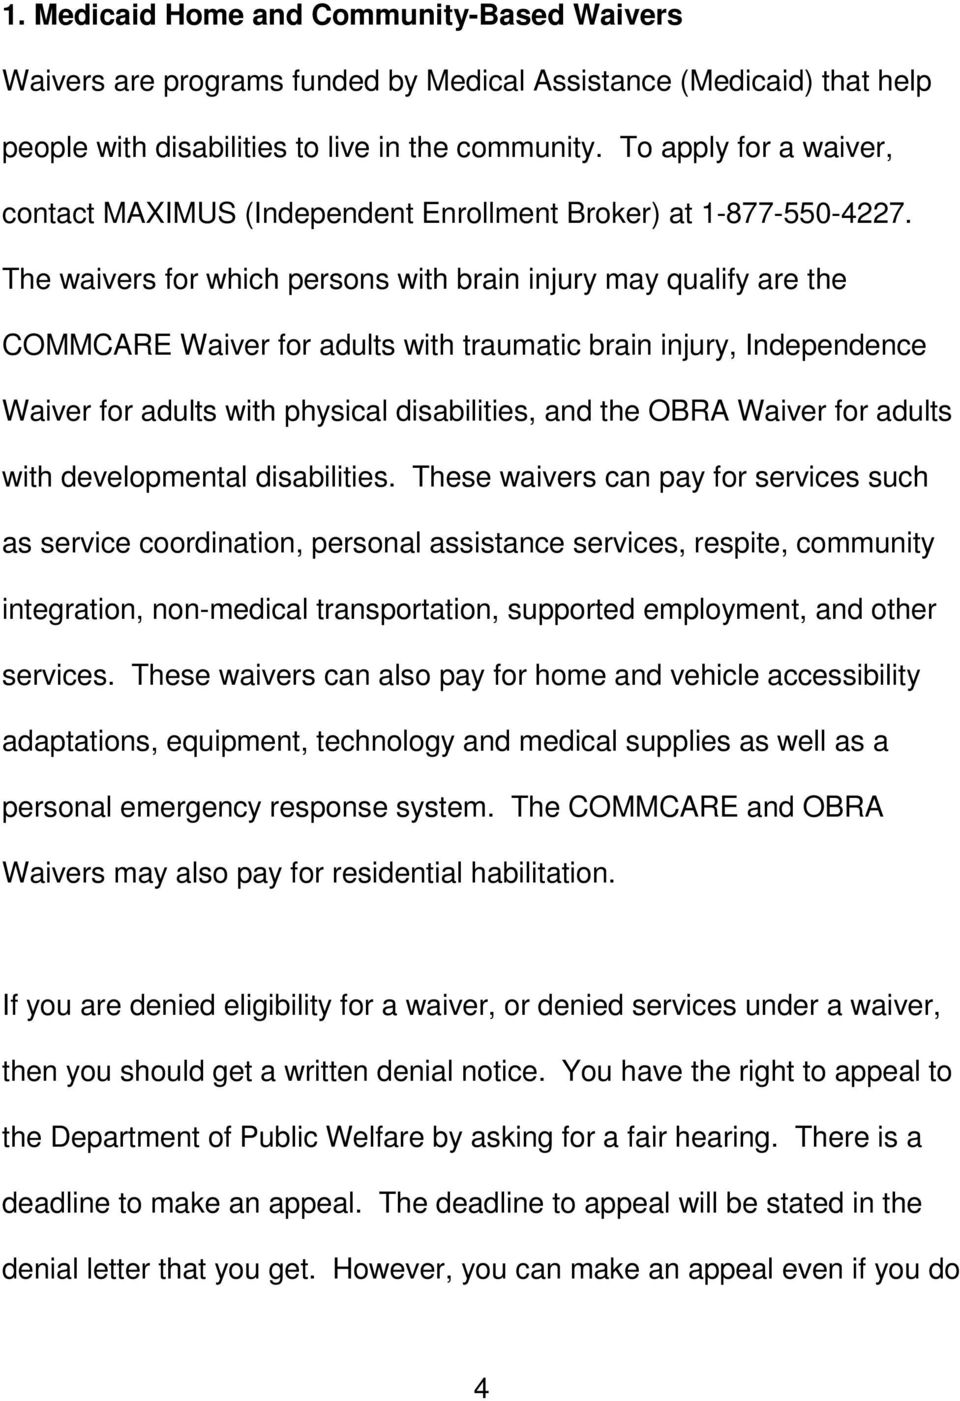 The waivers for which persons with brain injury may qualify are the COMMCARE Waiver for adults with traumatic brain injury, Independence Waiver for adults with physical disabilities, and the OBRA